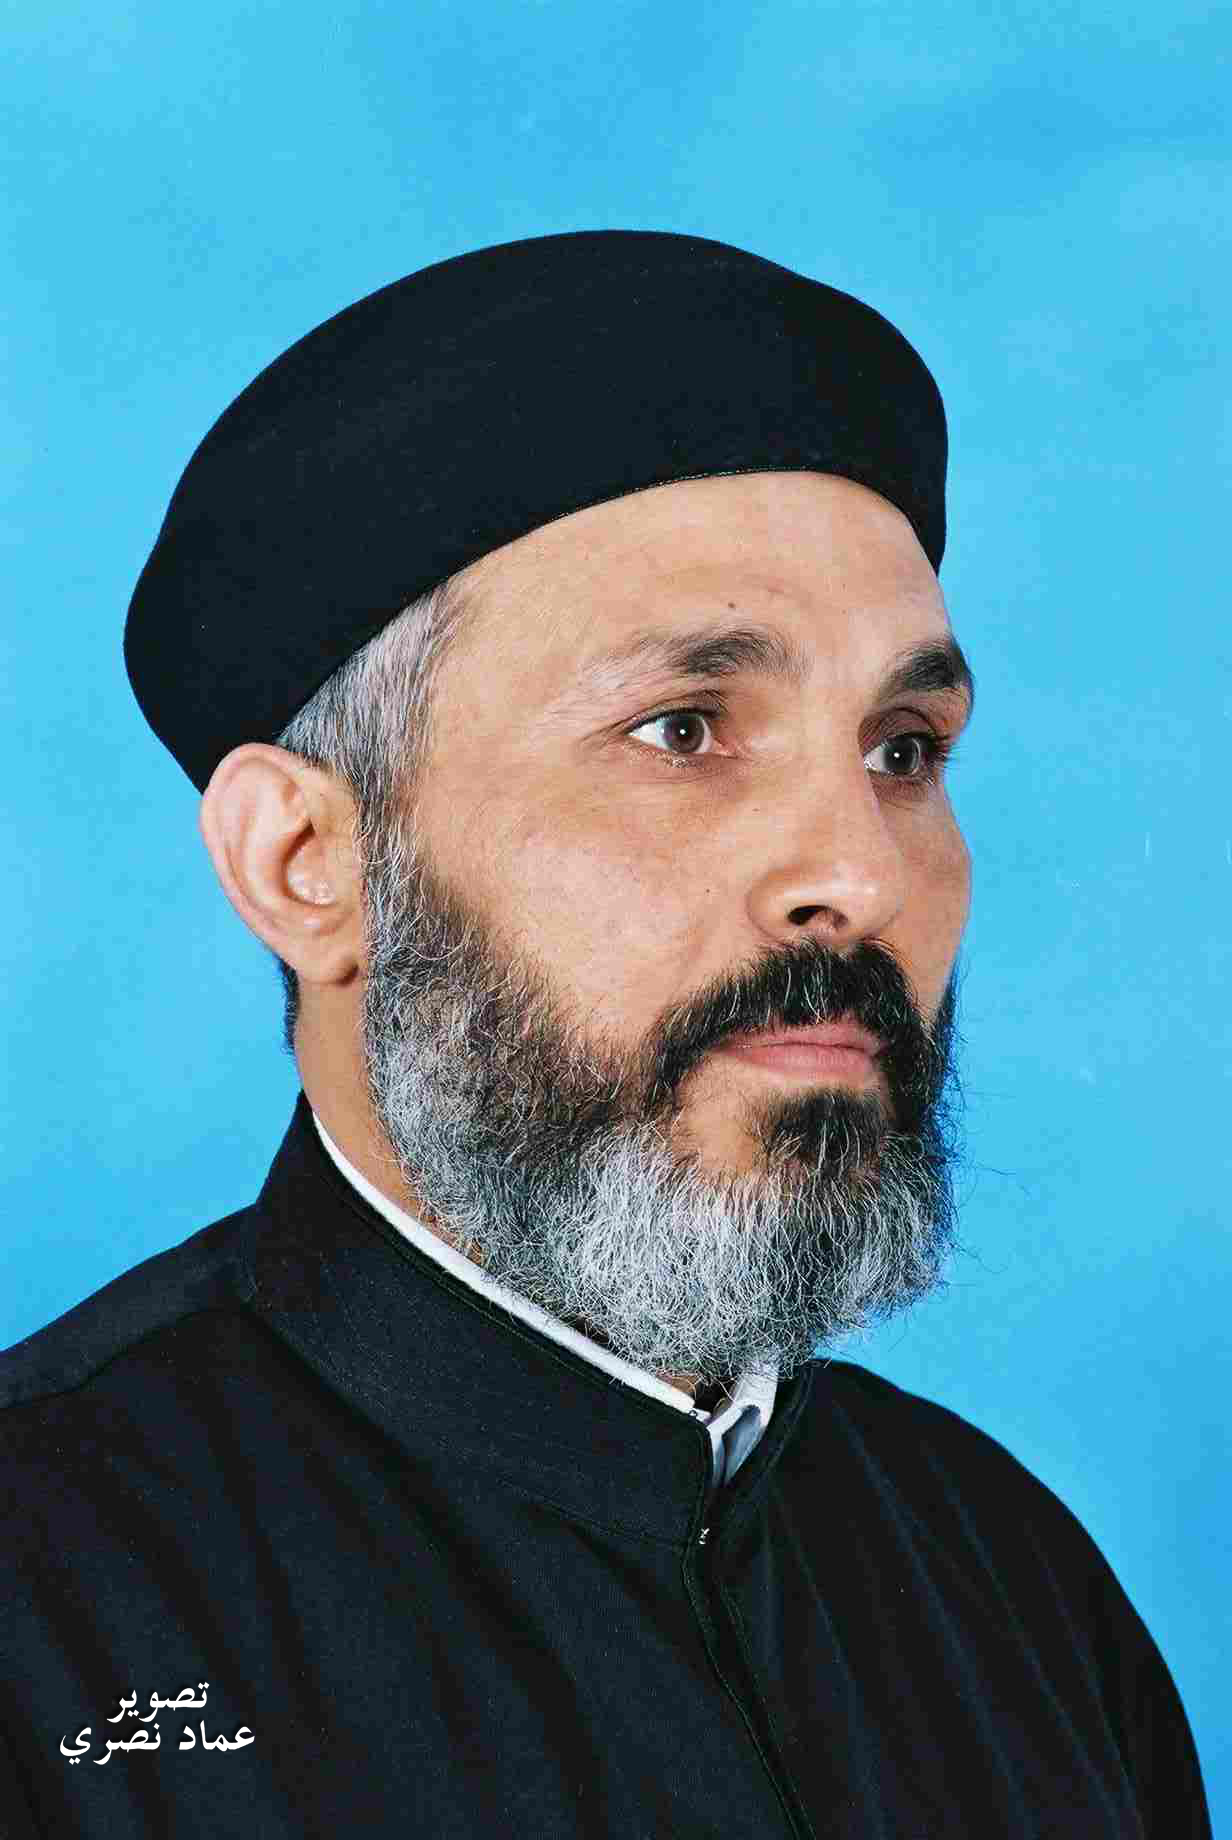 father shenouda